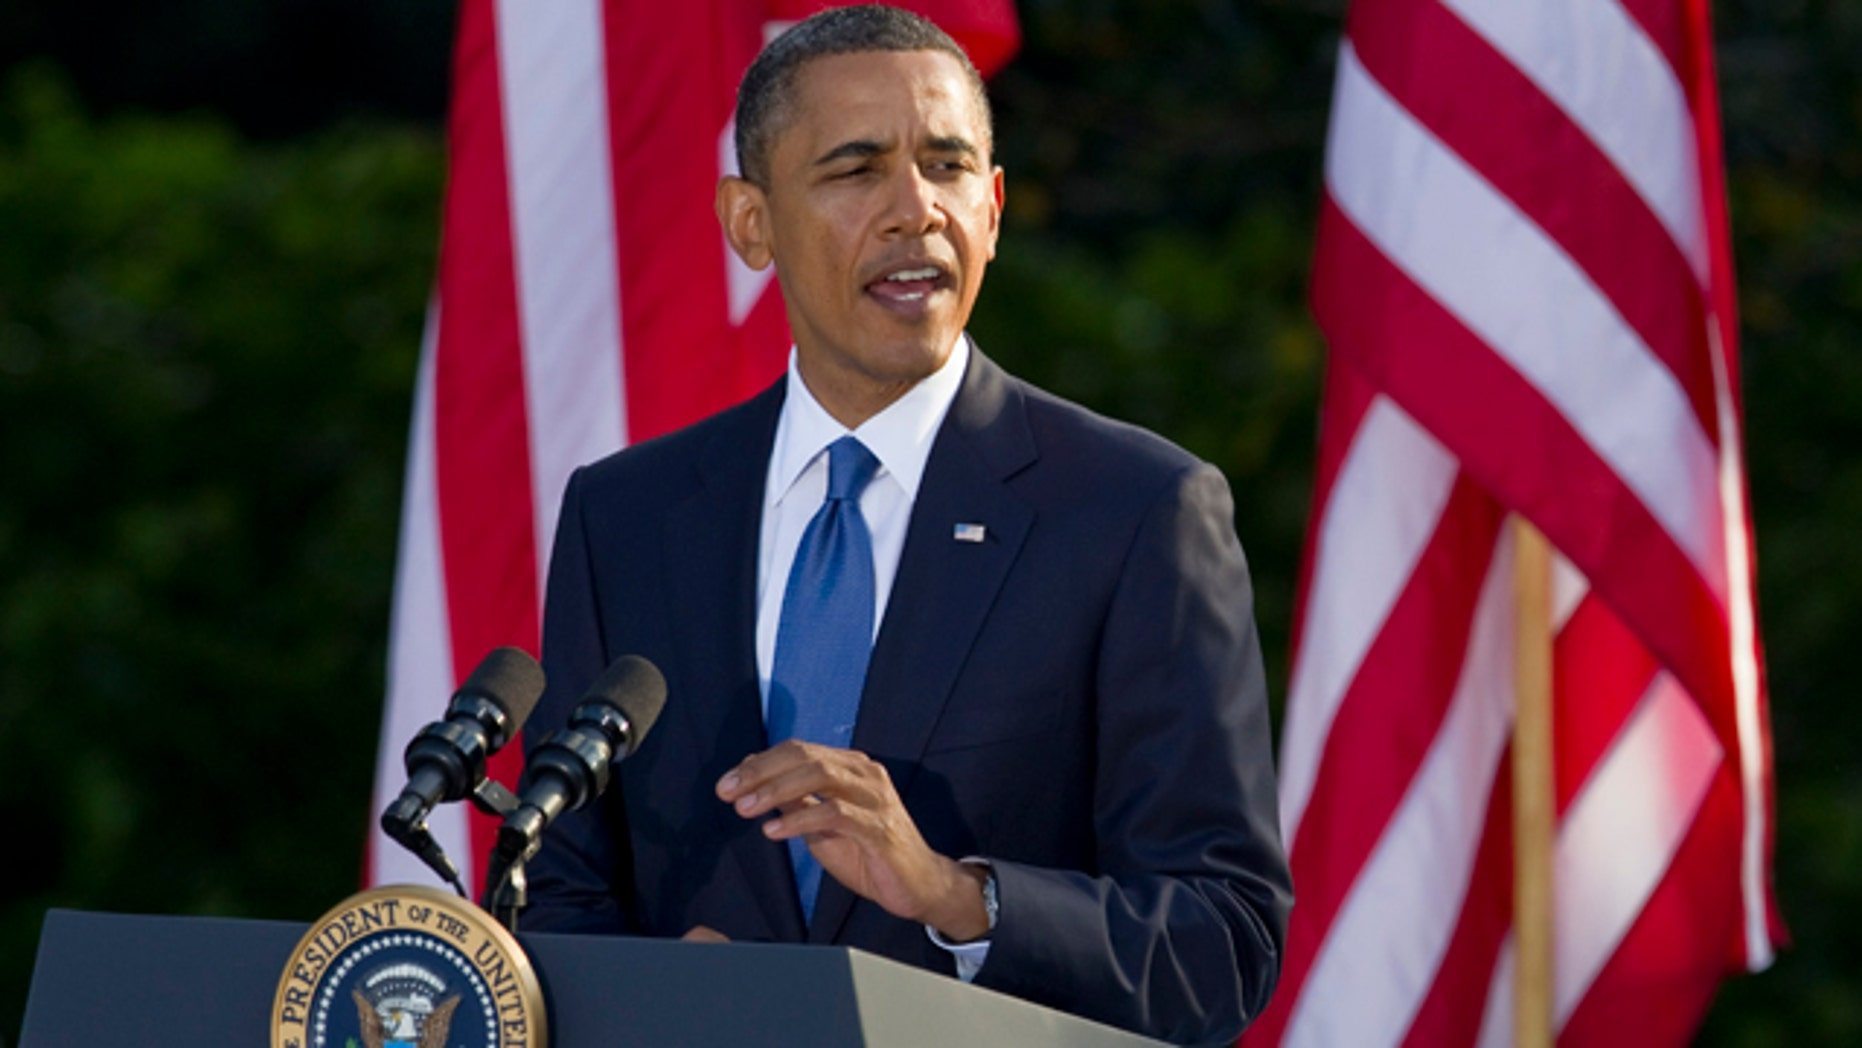 Sept. 13: President Obama gestures as he speaks to NCAA championship student athletes on the South Lawn of the White House in Washington.